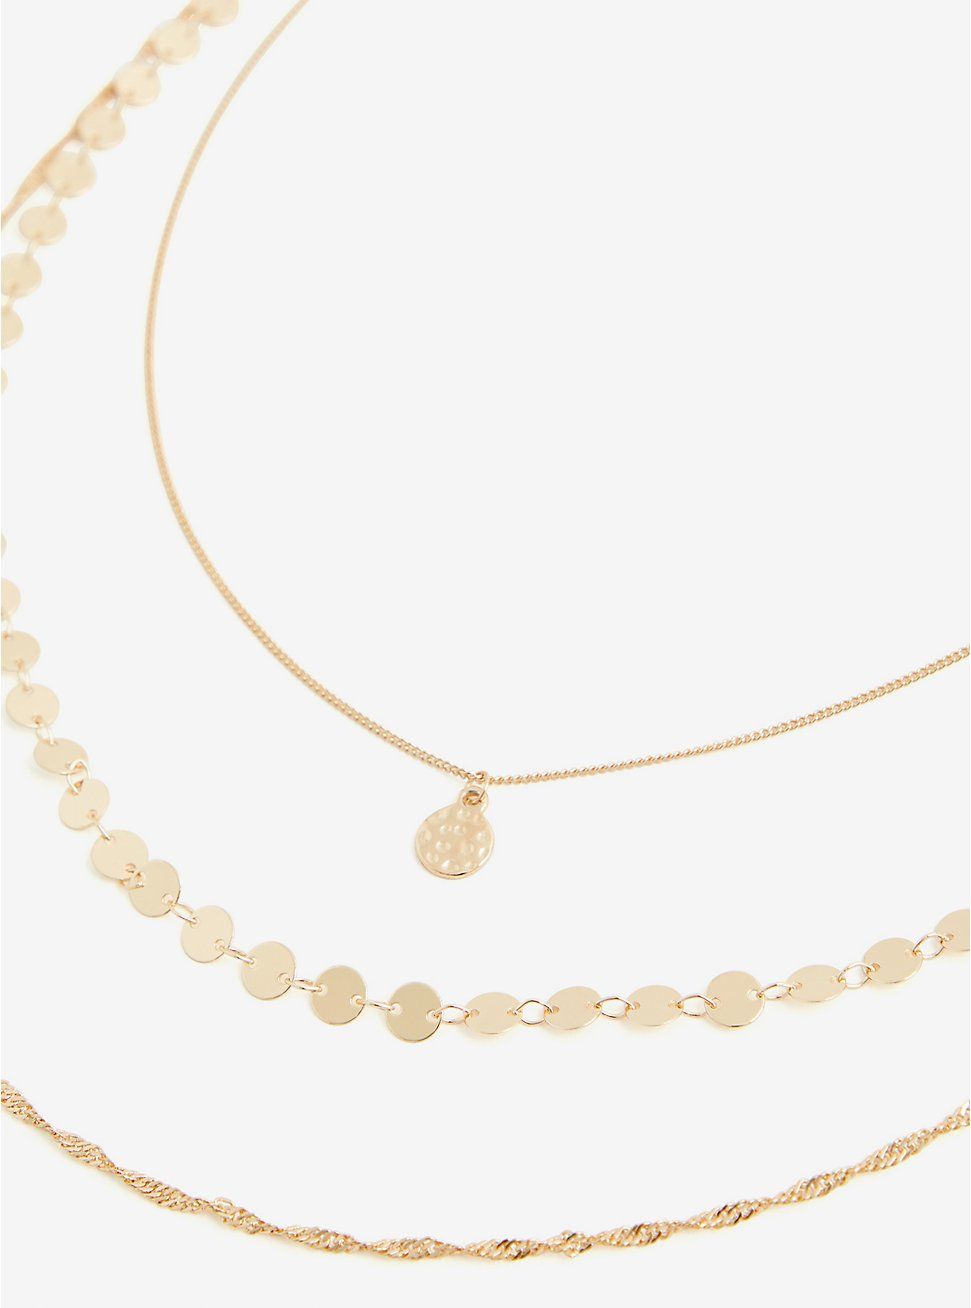 Gold-Tone 3 Layer Necklace, , hi-res